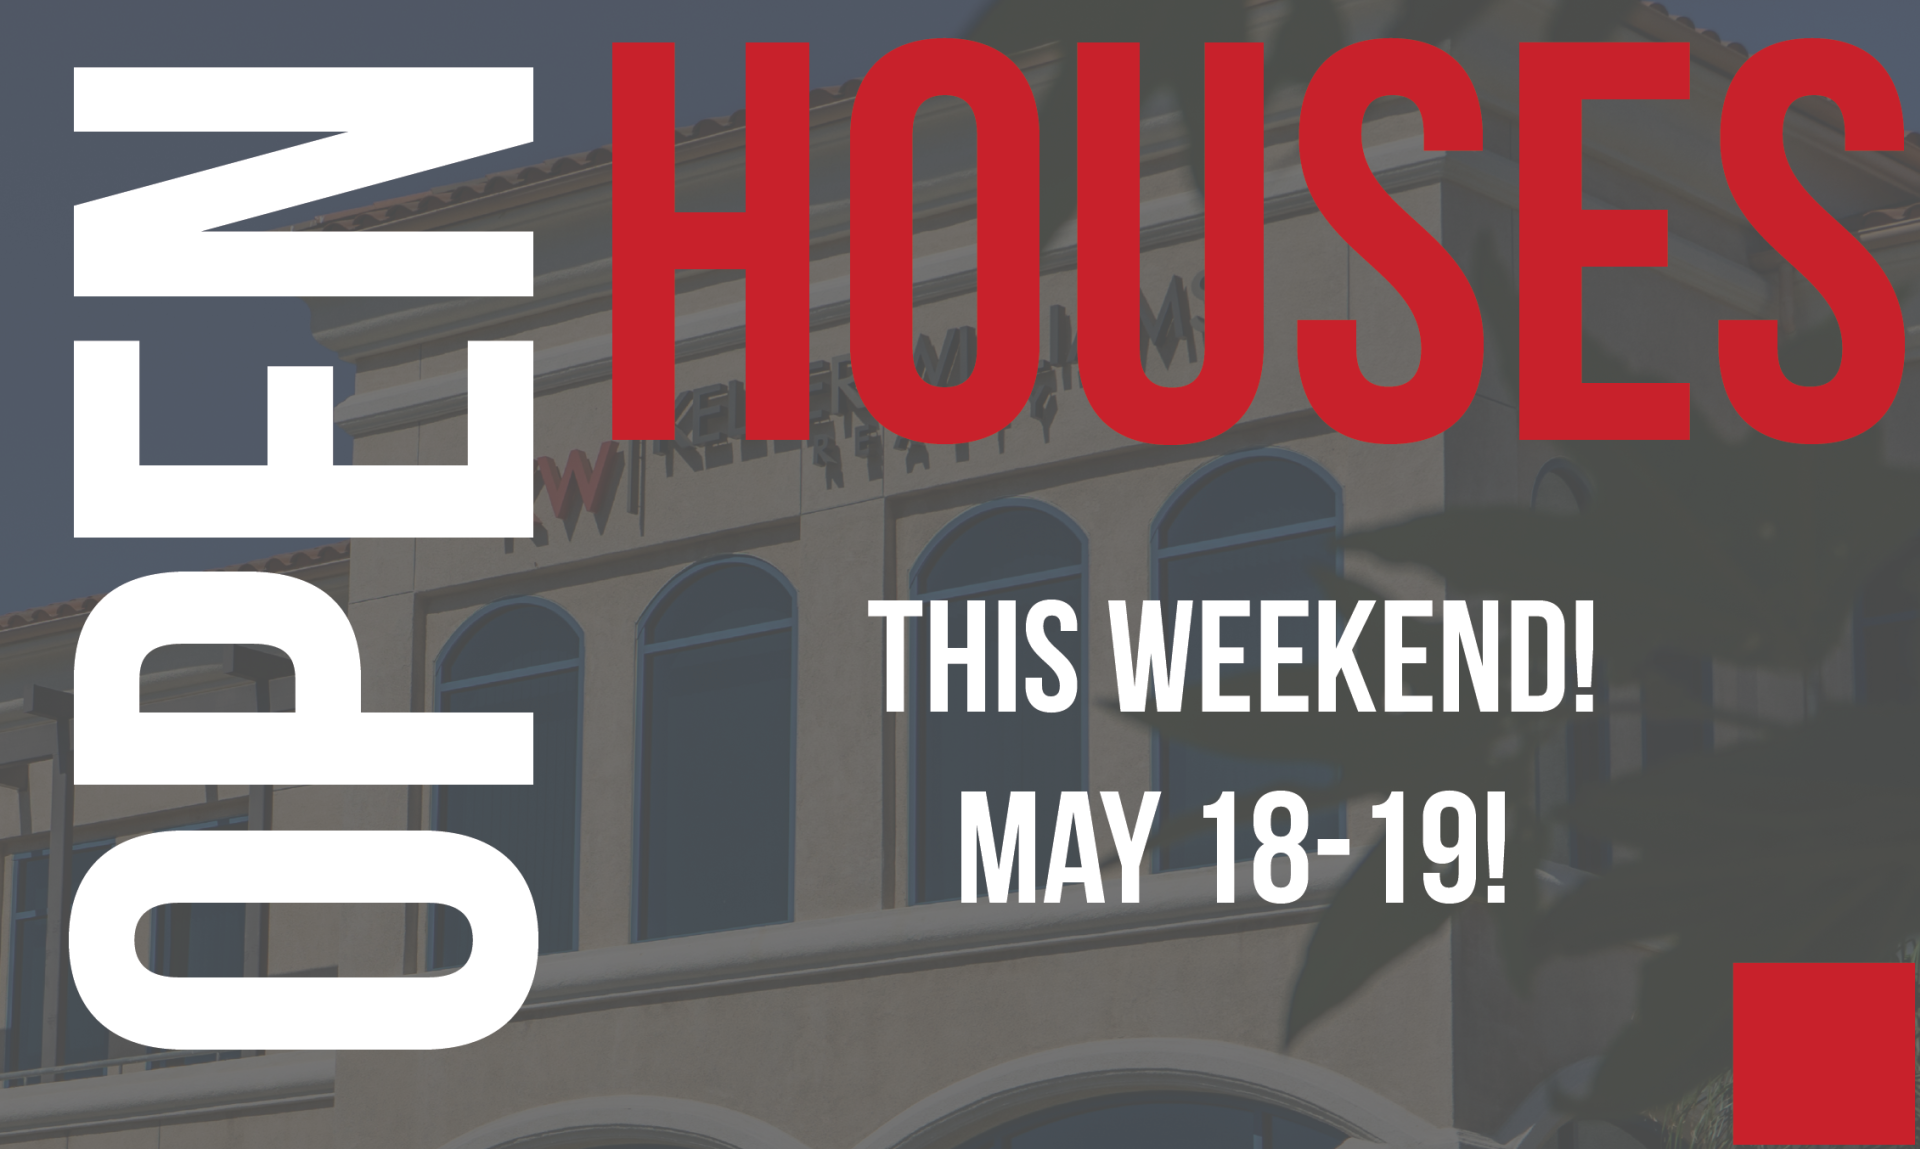 Open Houses This Weekend! May 18-19!